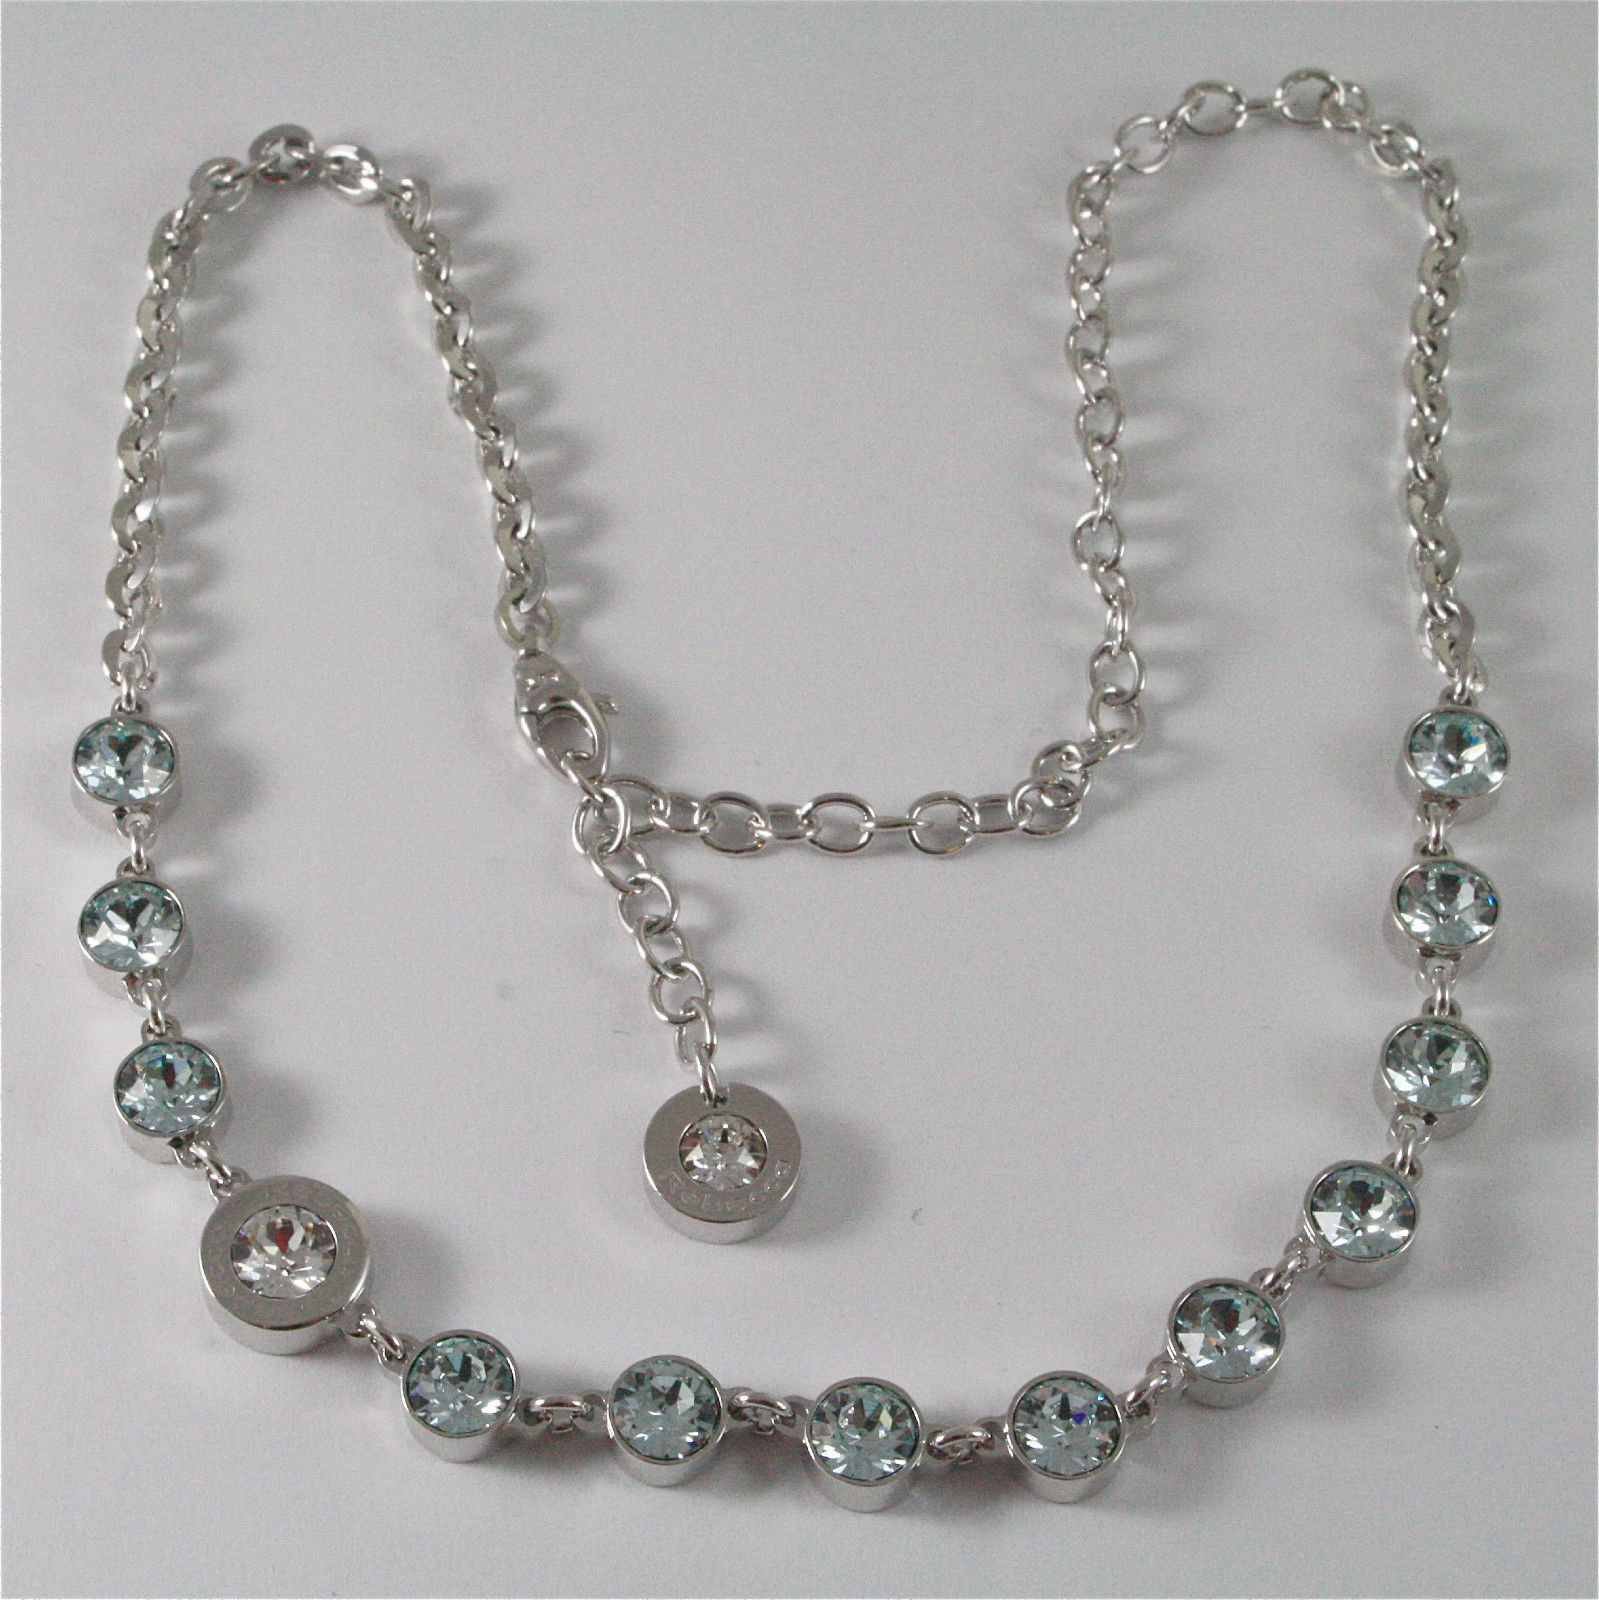 WHITE GOLD PLATED BRONZE REBECCA TENNIS NECKLACE BPBKBL54 MADE IN ITALY 15.75 IN